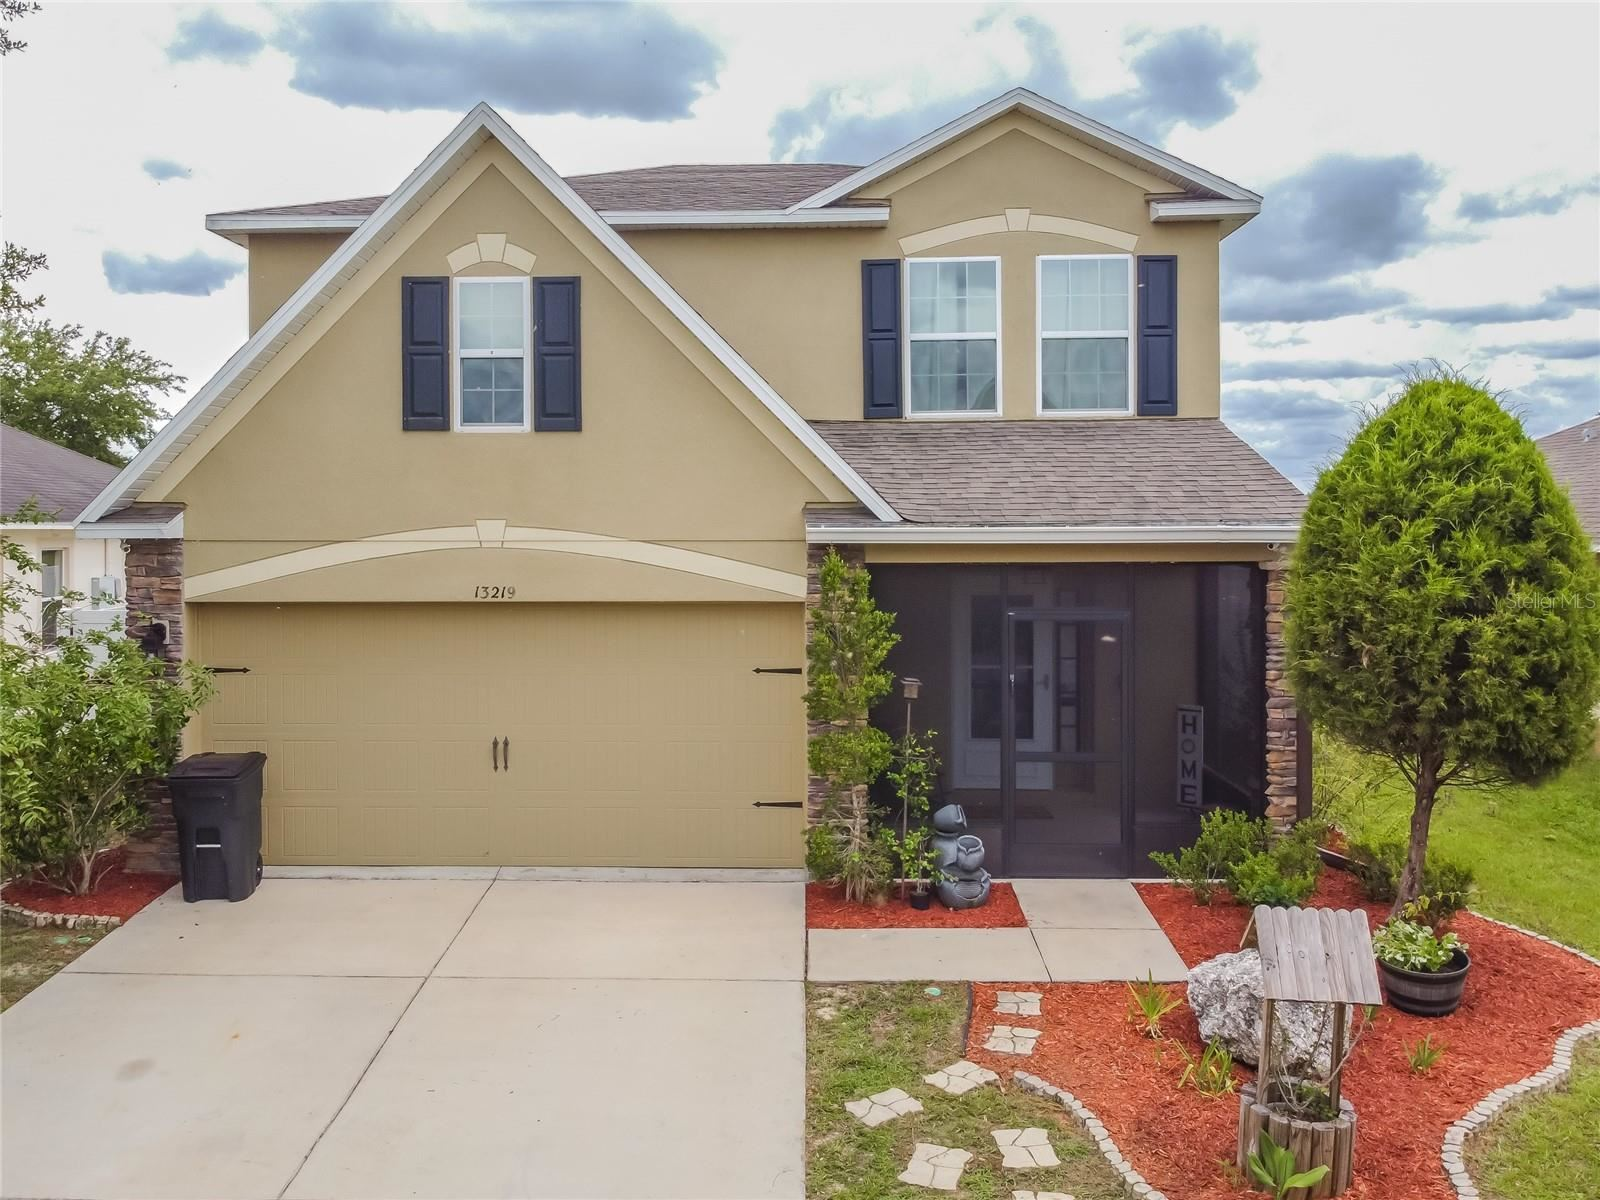 13219 WATERFORD CASTLE DRIVE, Dade City, FL 33525 - MLS#: T3314105